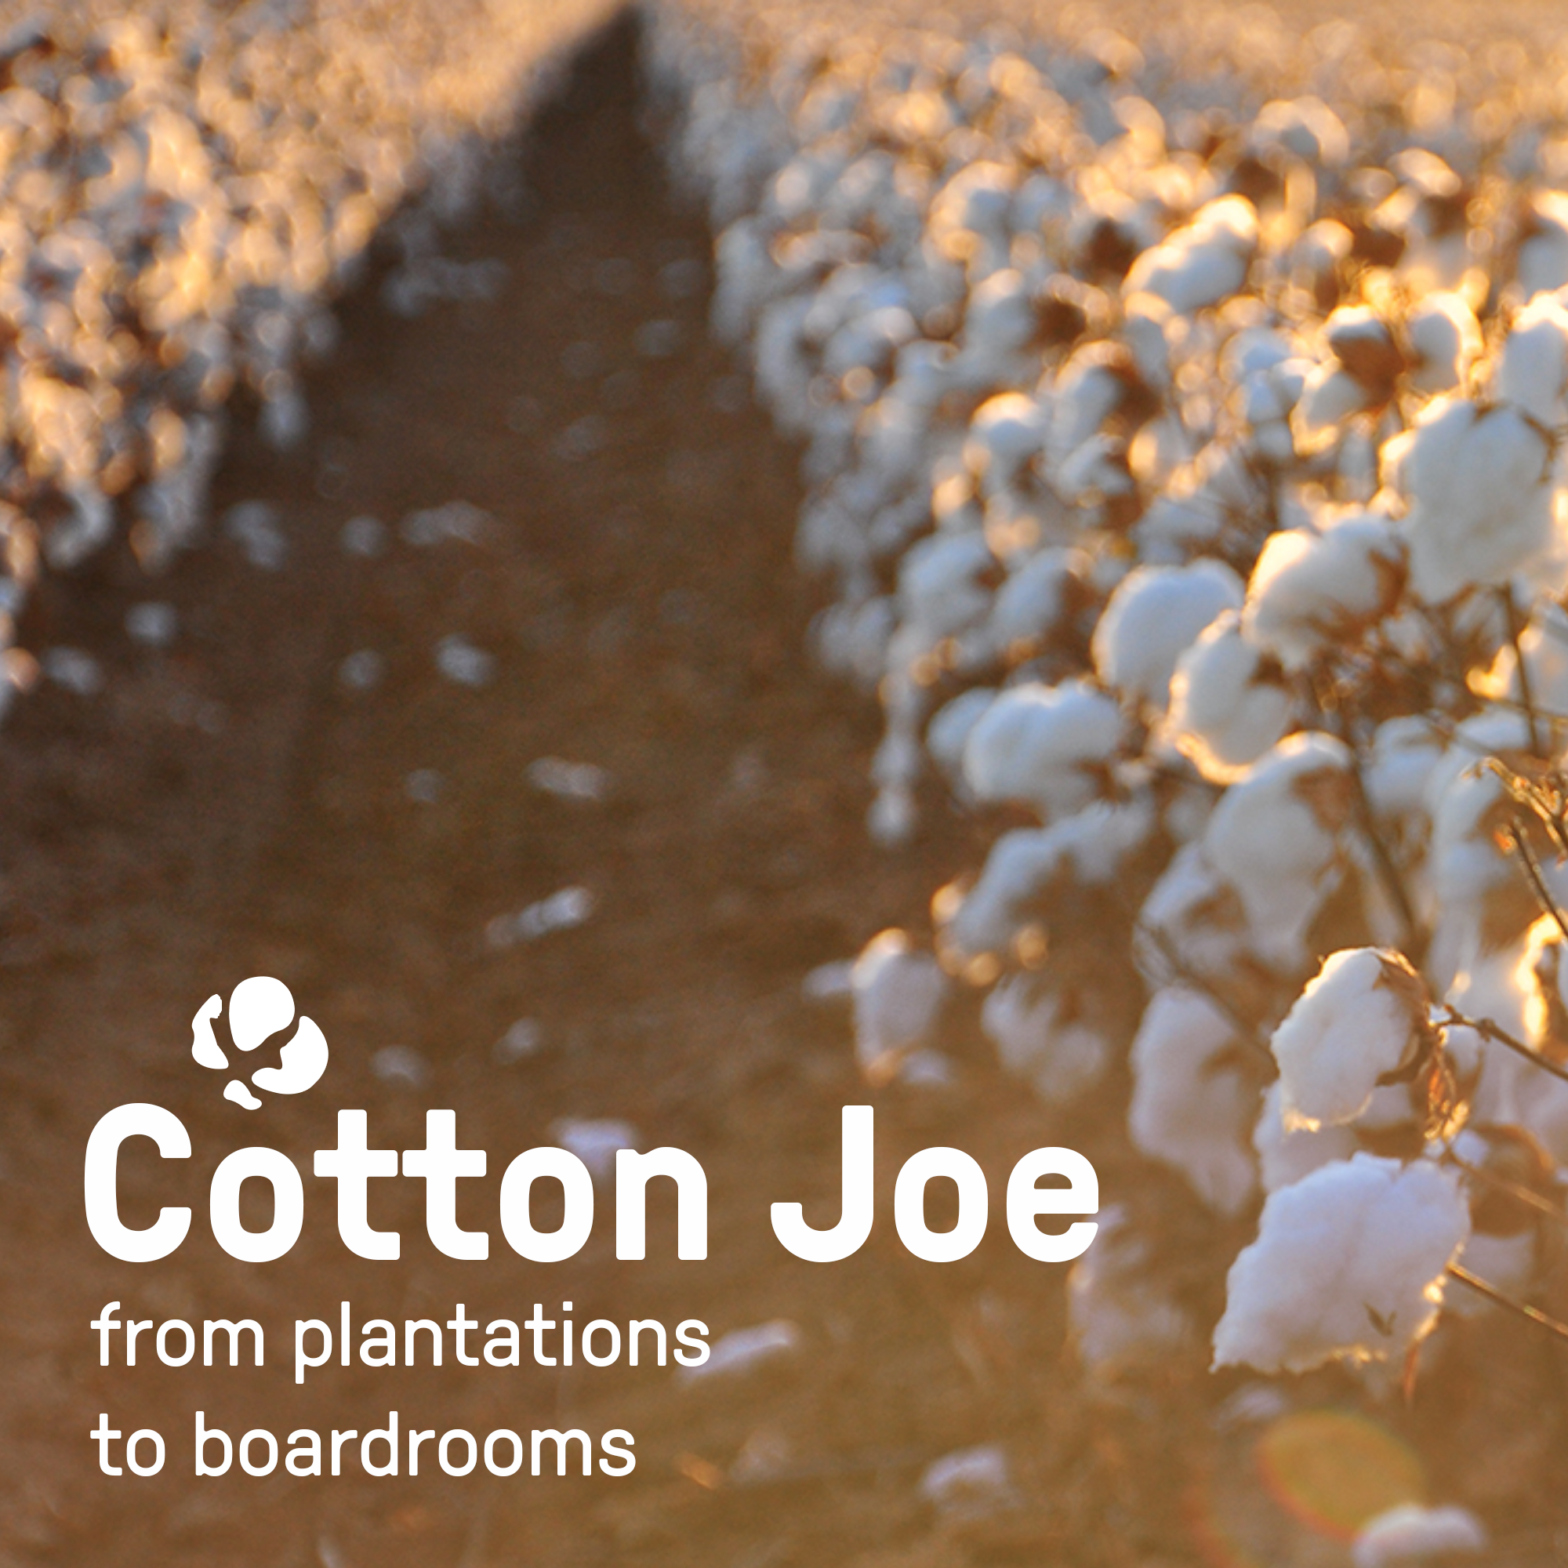 Cotton Joe